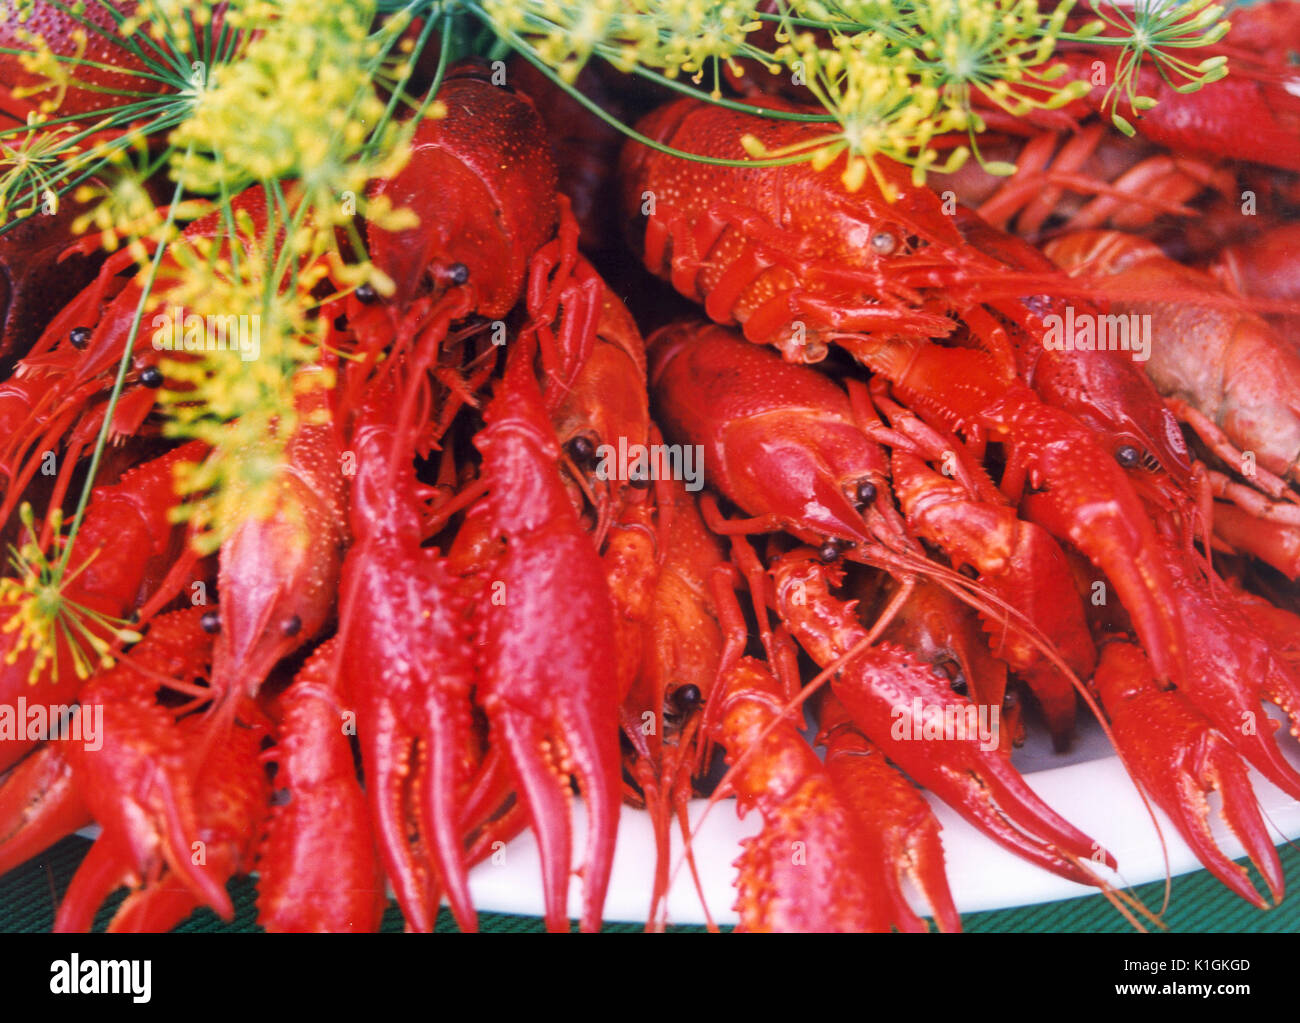 CRAYFISH ready for serving decorated with dill 2009 - Stock Image